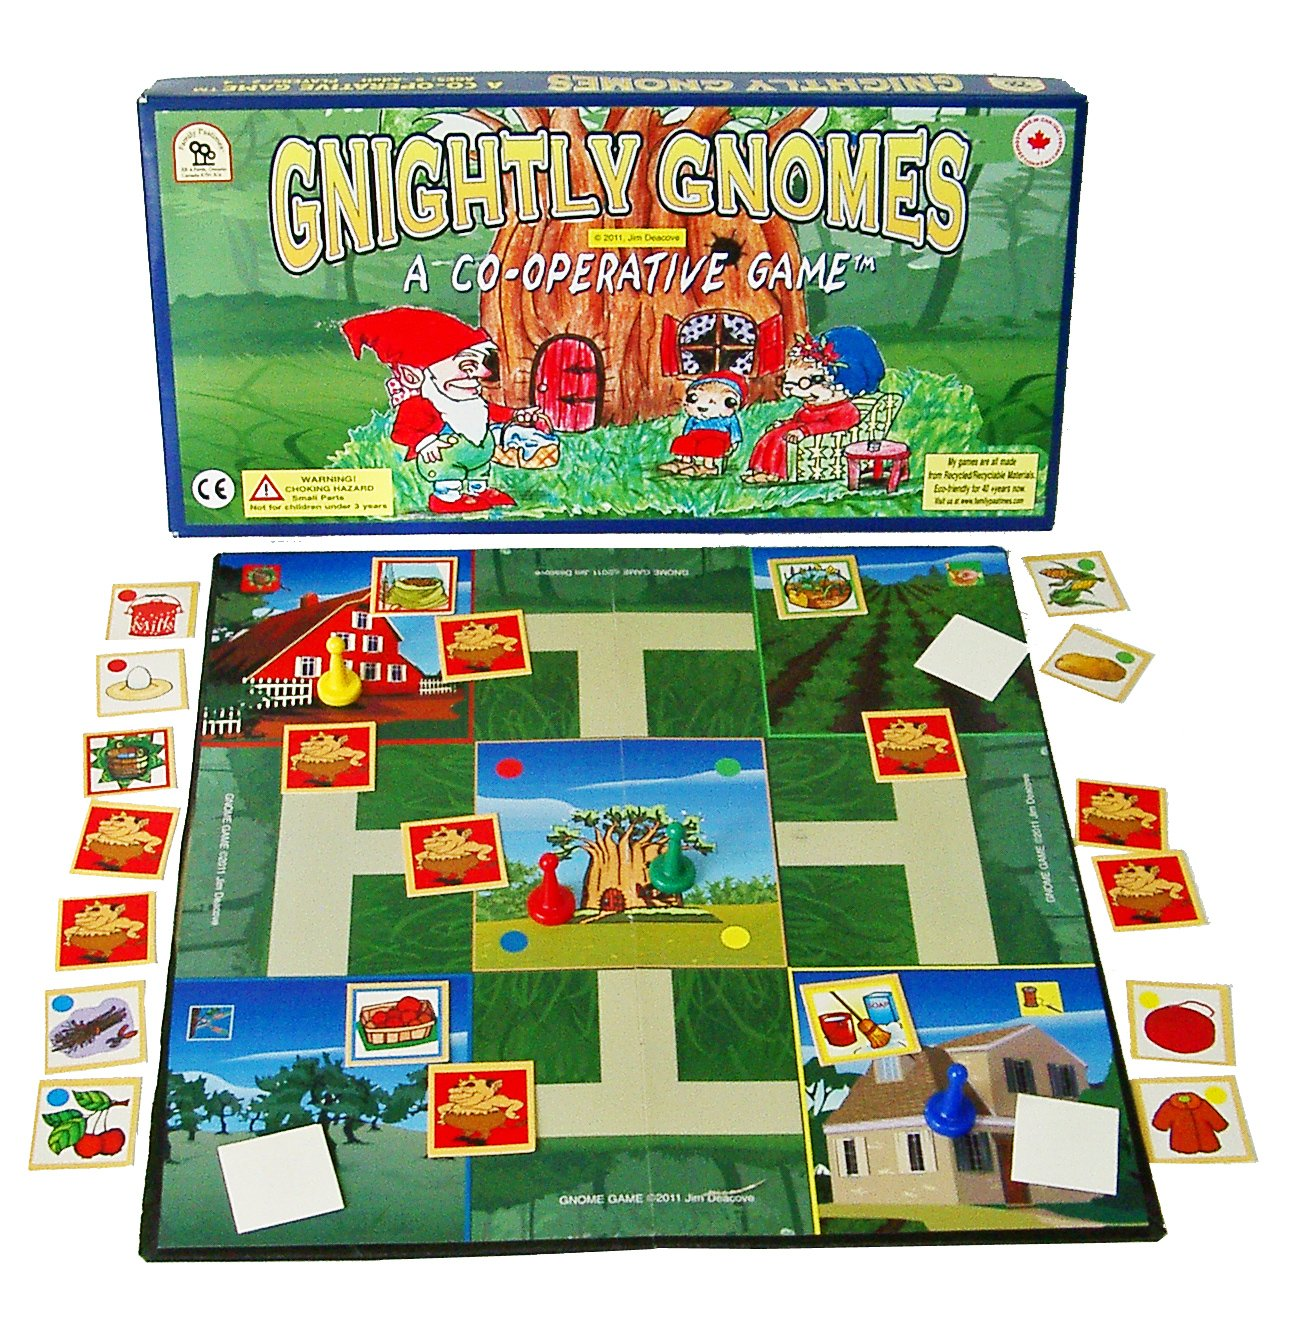 Family Pastimes Gnightly Gnomes A Co operative Fantasy Game